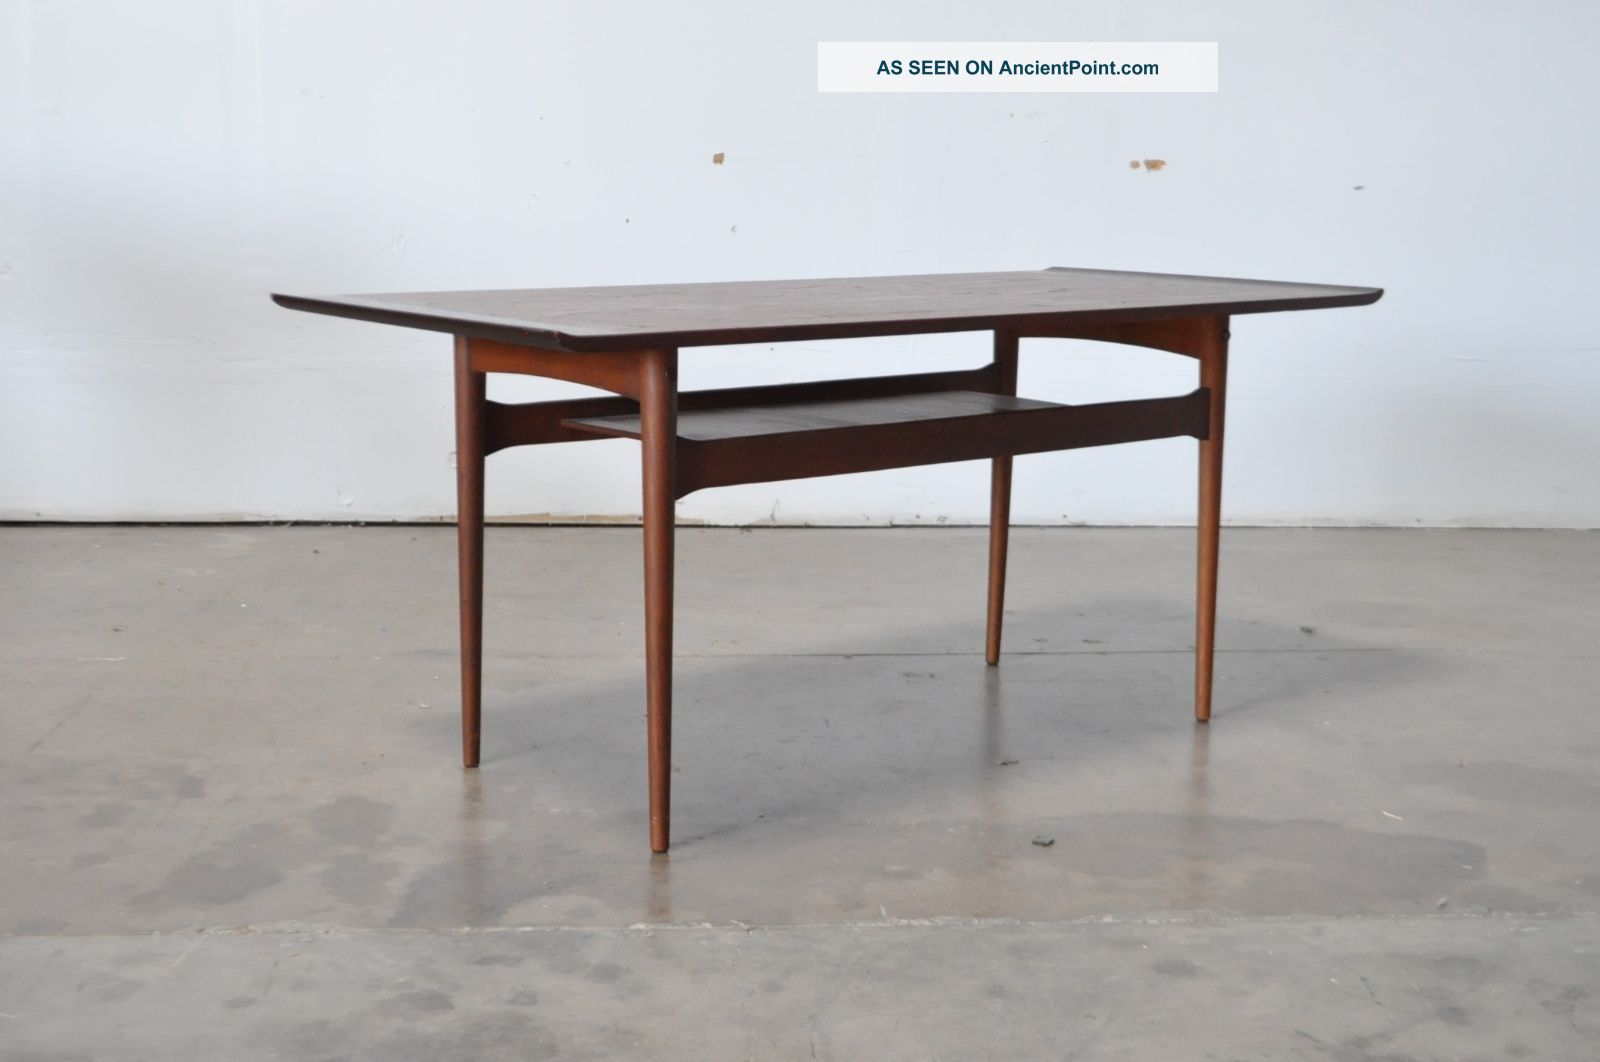 Vtg Mid Century Danish Modern Teak Wood Tall Coffee Sofa Table Jalk Mid-Century Modernism photo